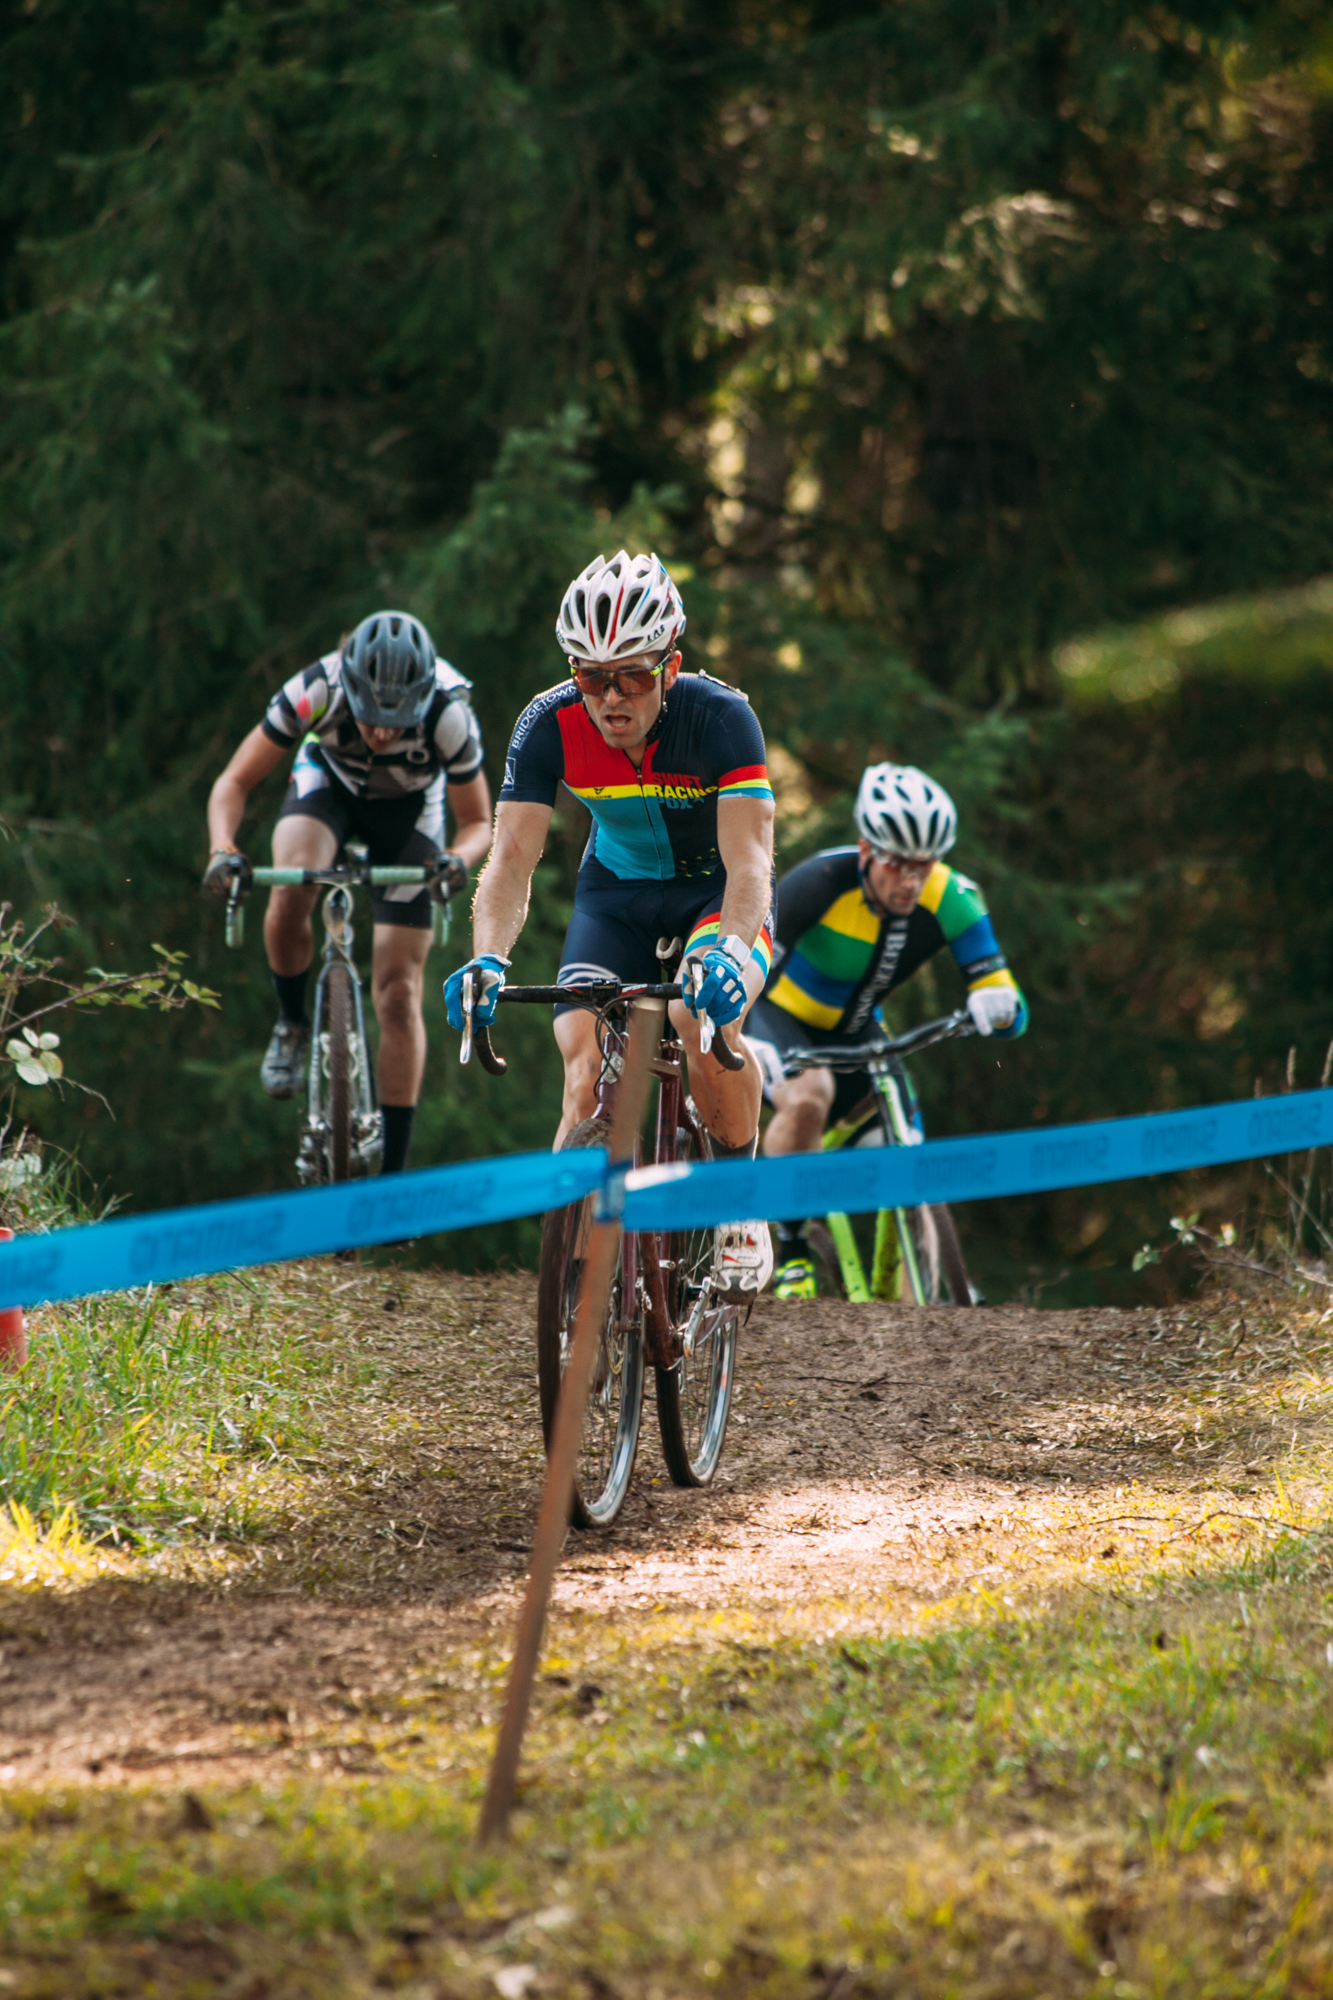 Cyclocross18_CCCX_RainierHS-131-mettlecycling.jpg